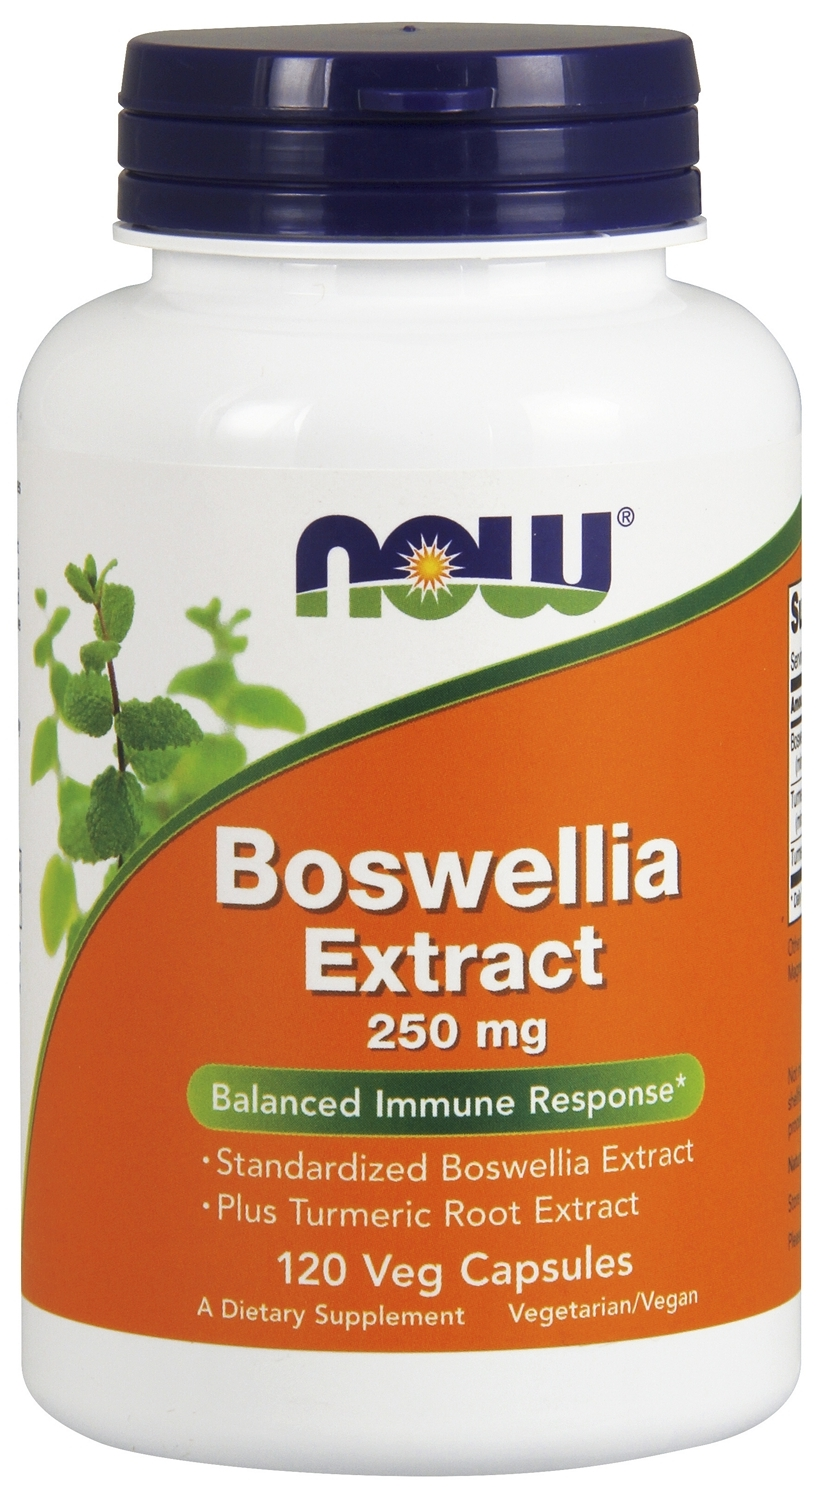 Boswellia Extract 250 mg 120 Vcaps by NOW